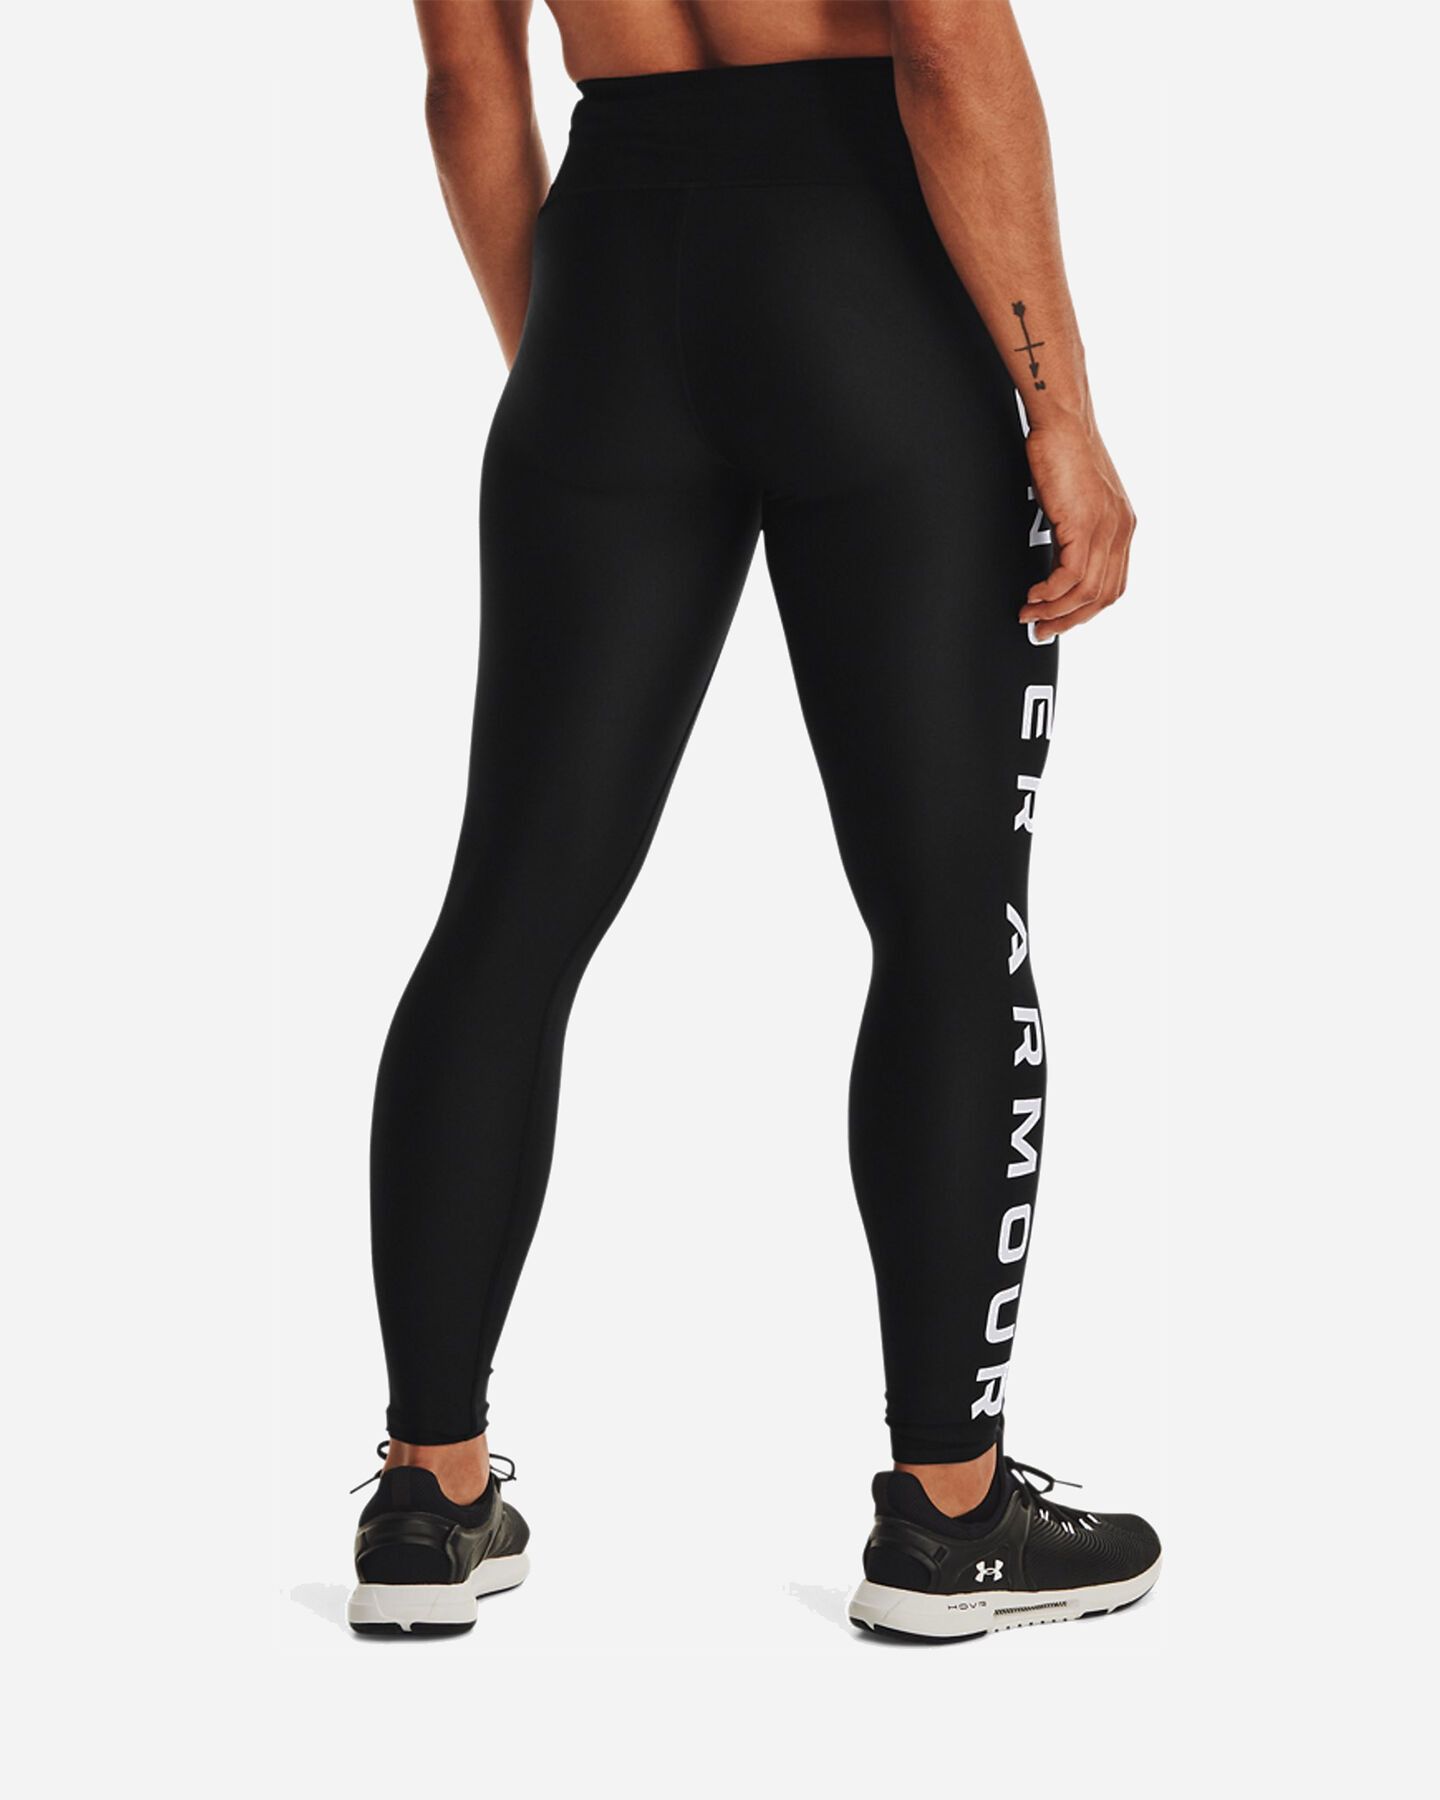 Leggings UNDER ARMOUR LATERAL LOGO W S5287029 scatto 3